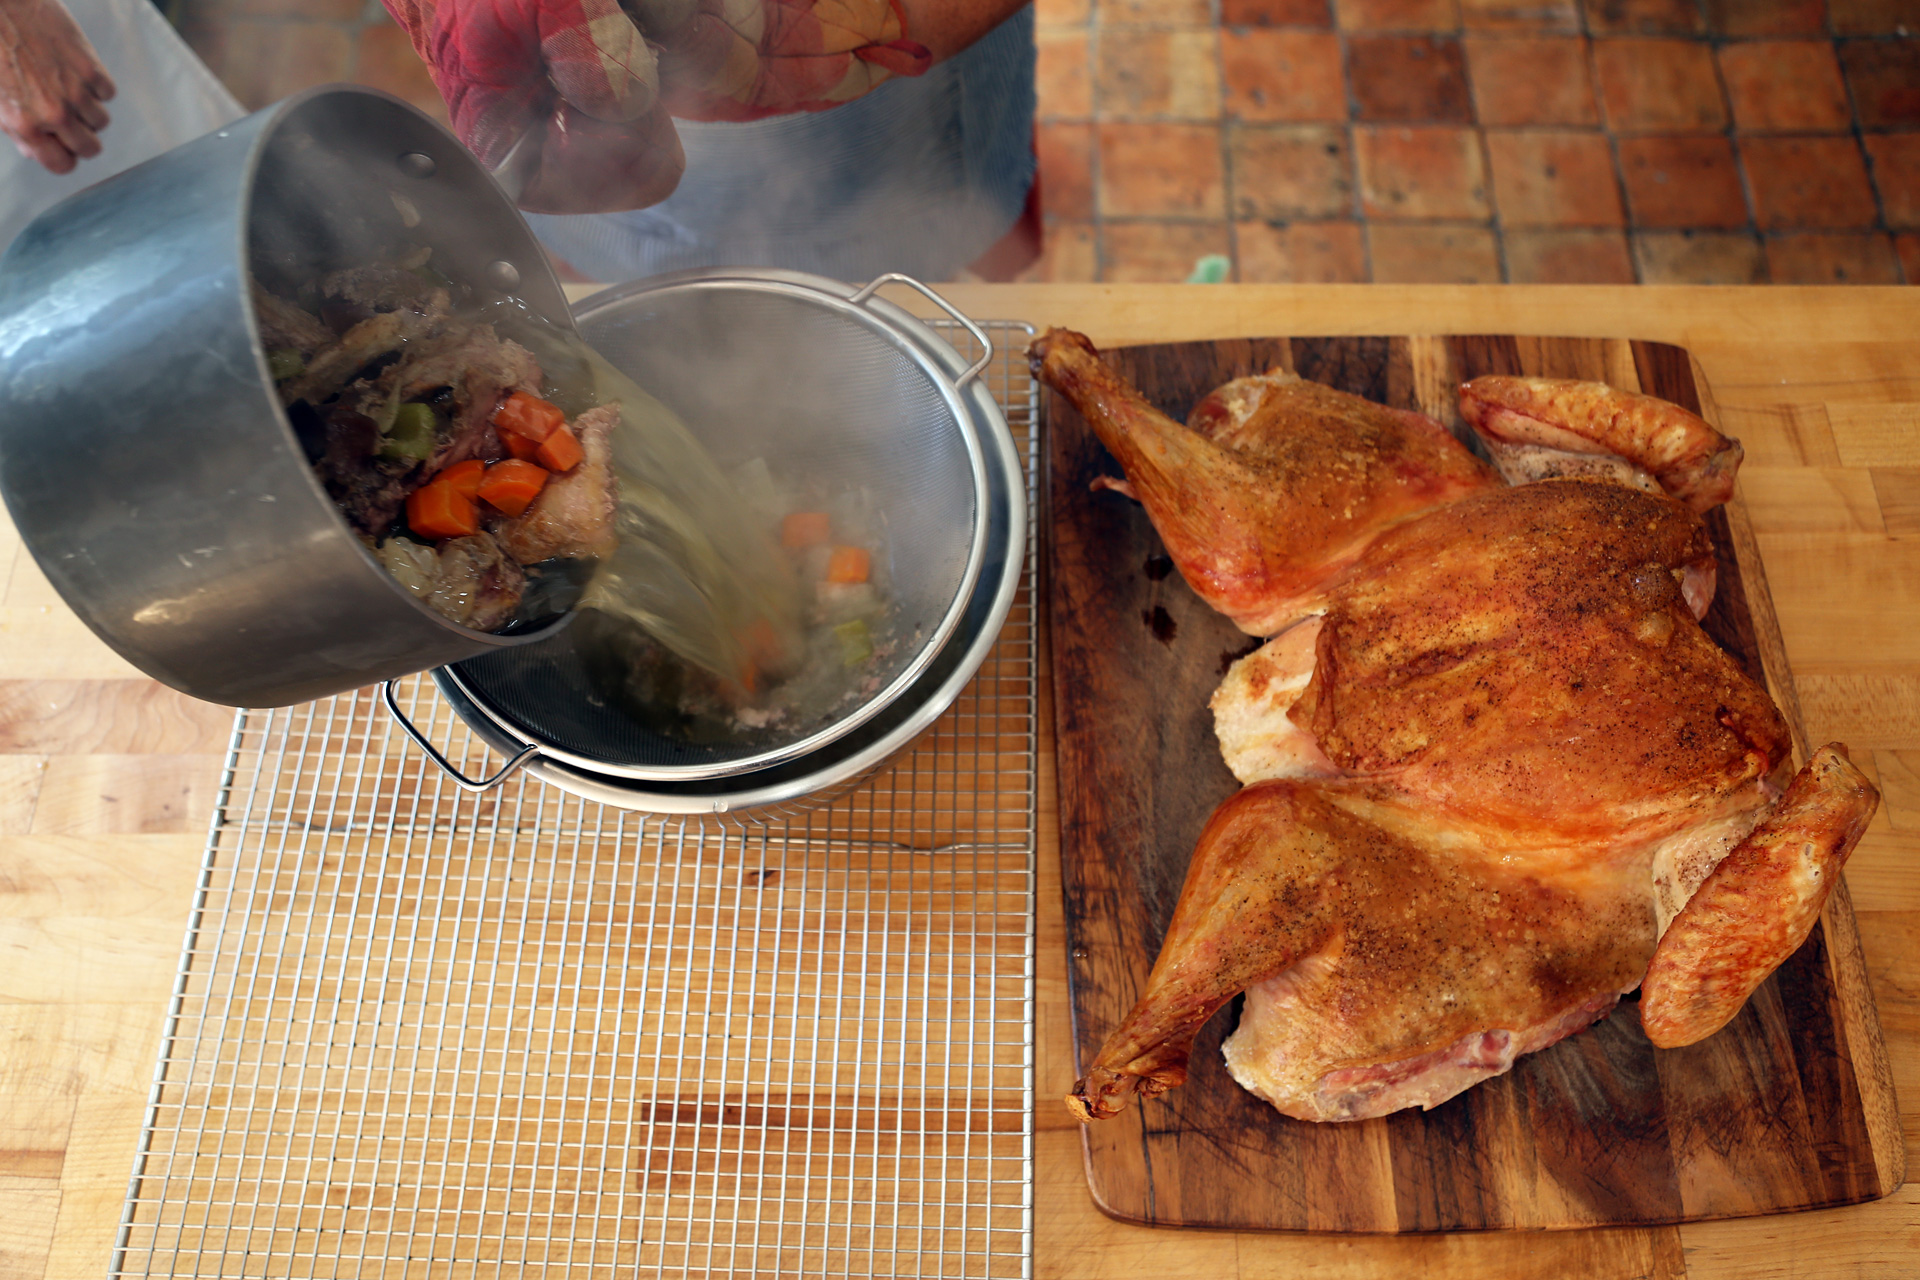 Pour off the drippings, remove the fat, and add to your turkey gravy!